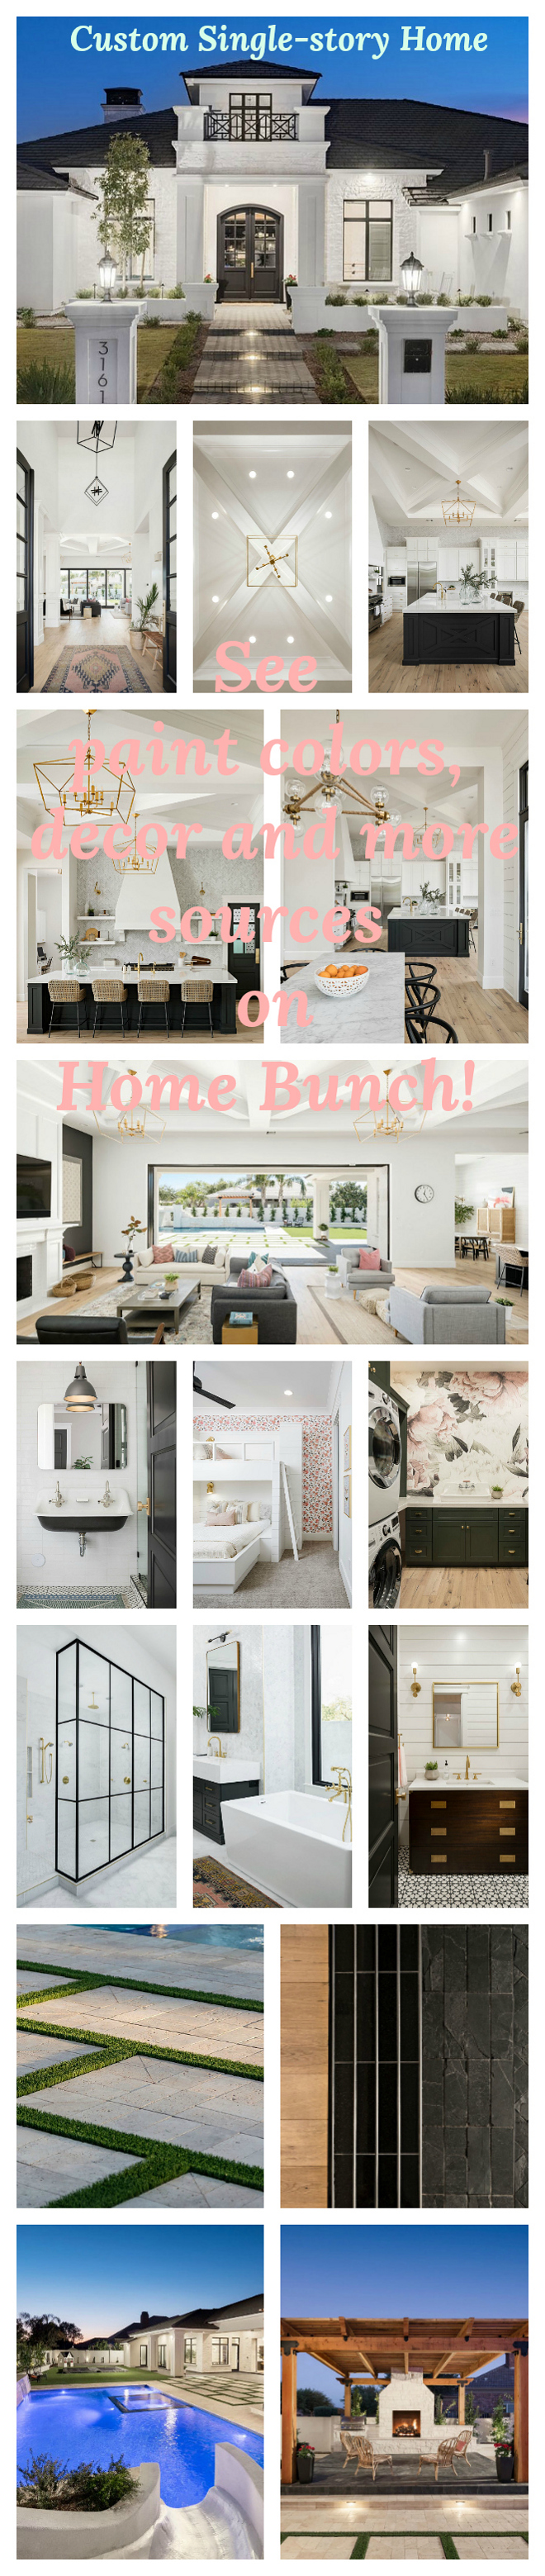 Custom Single-story Home photos #CustomSinglestoryHome #CustomSinglestoryHomeephotos See paint colors, decor, lighting on Home Bunch